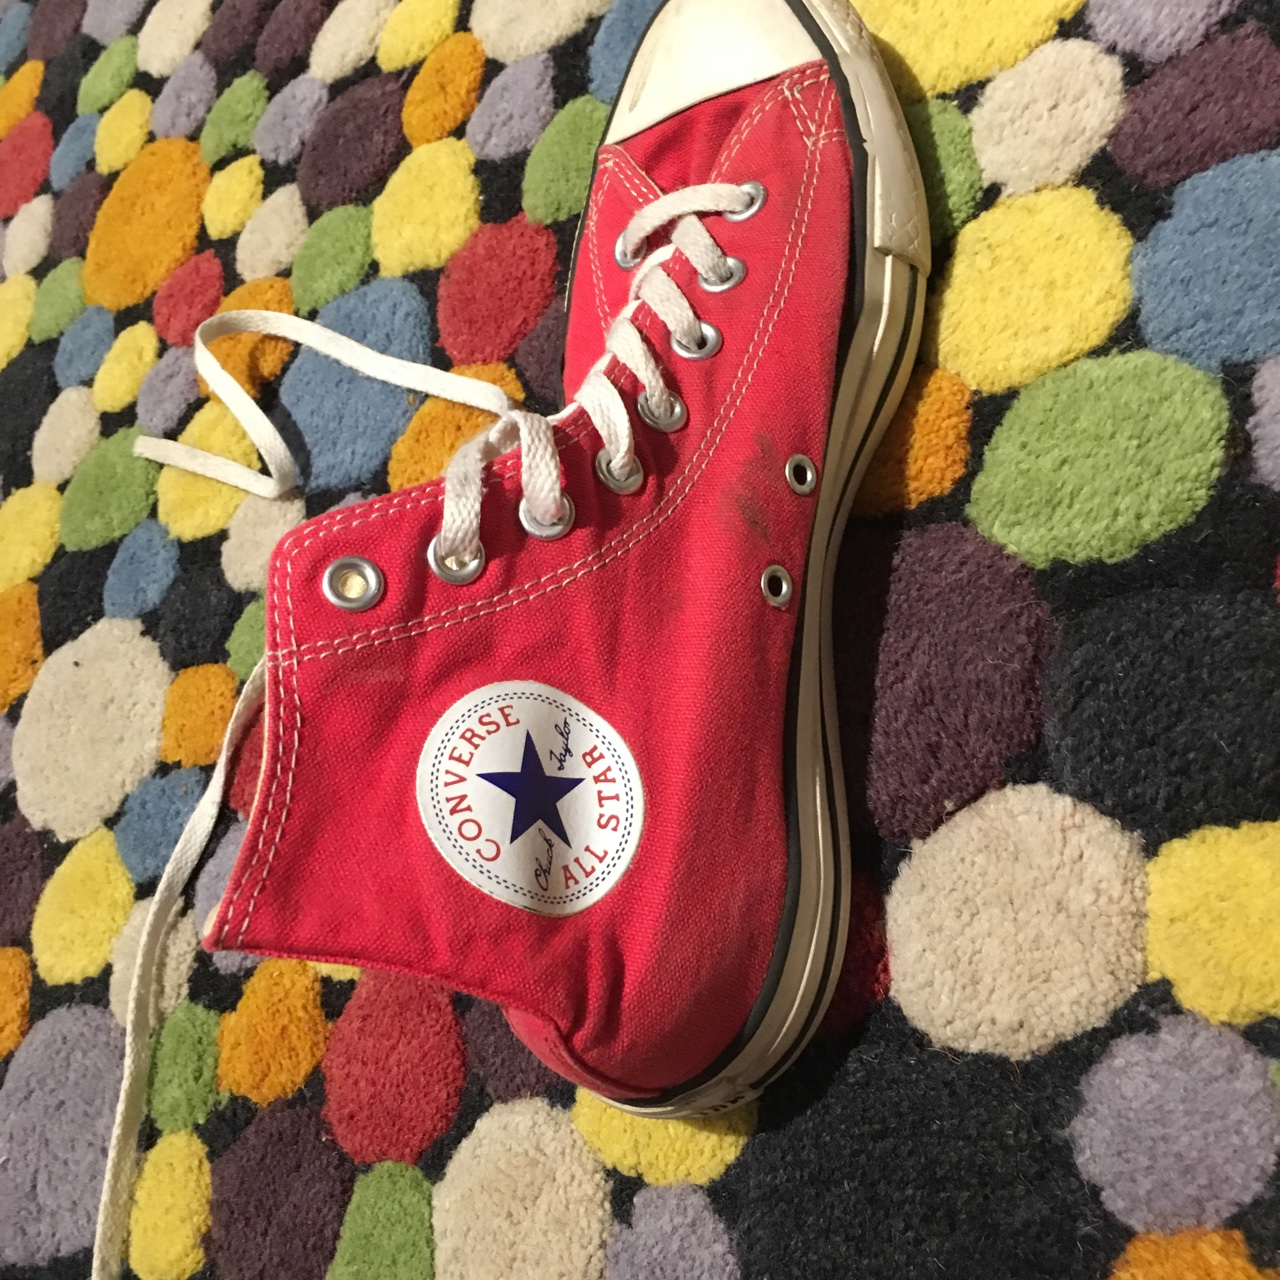 Red High top converse all star by Chuck Taylor. Depop